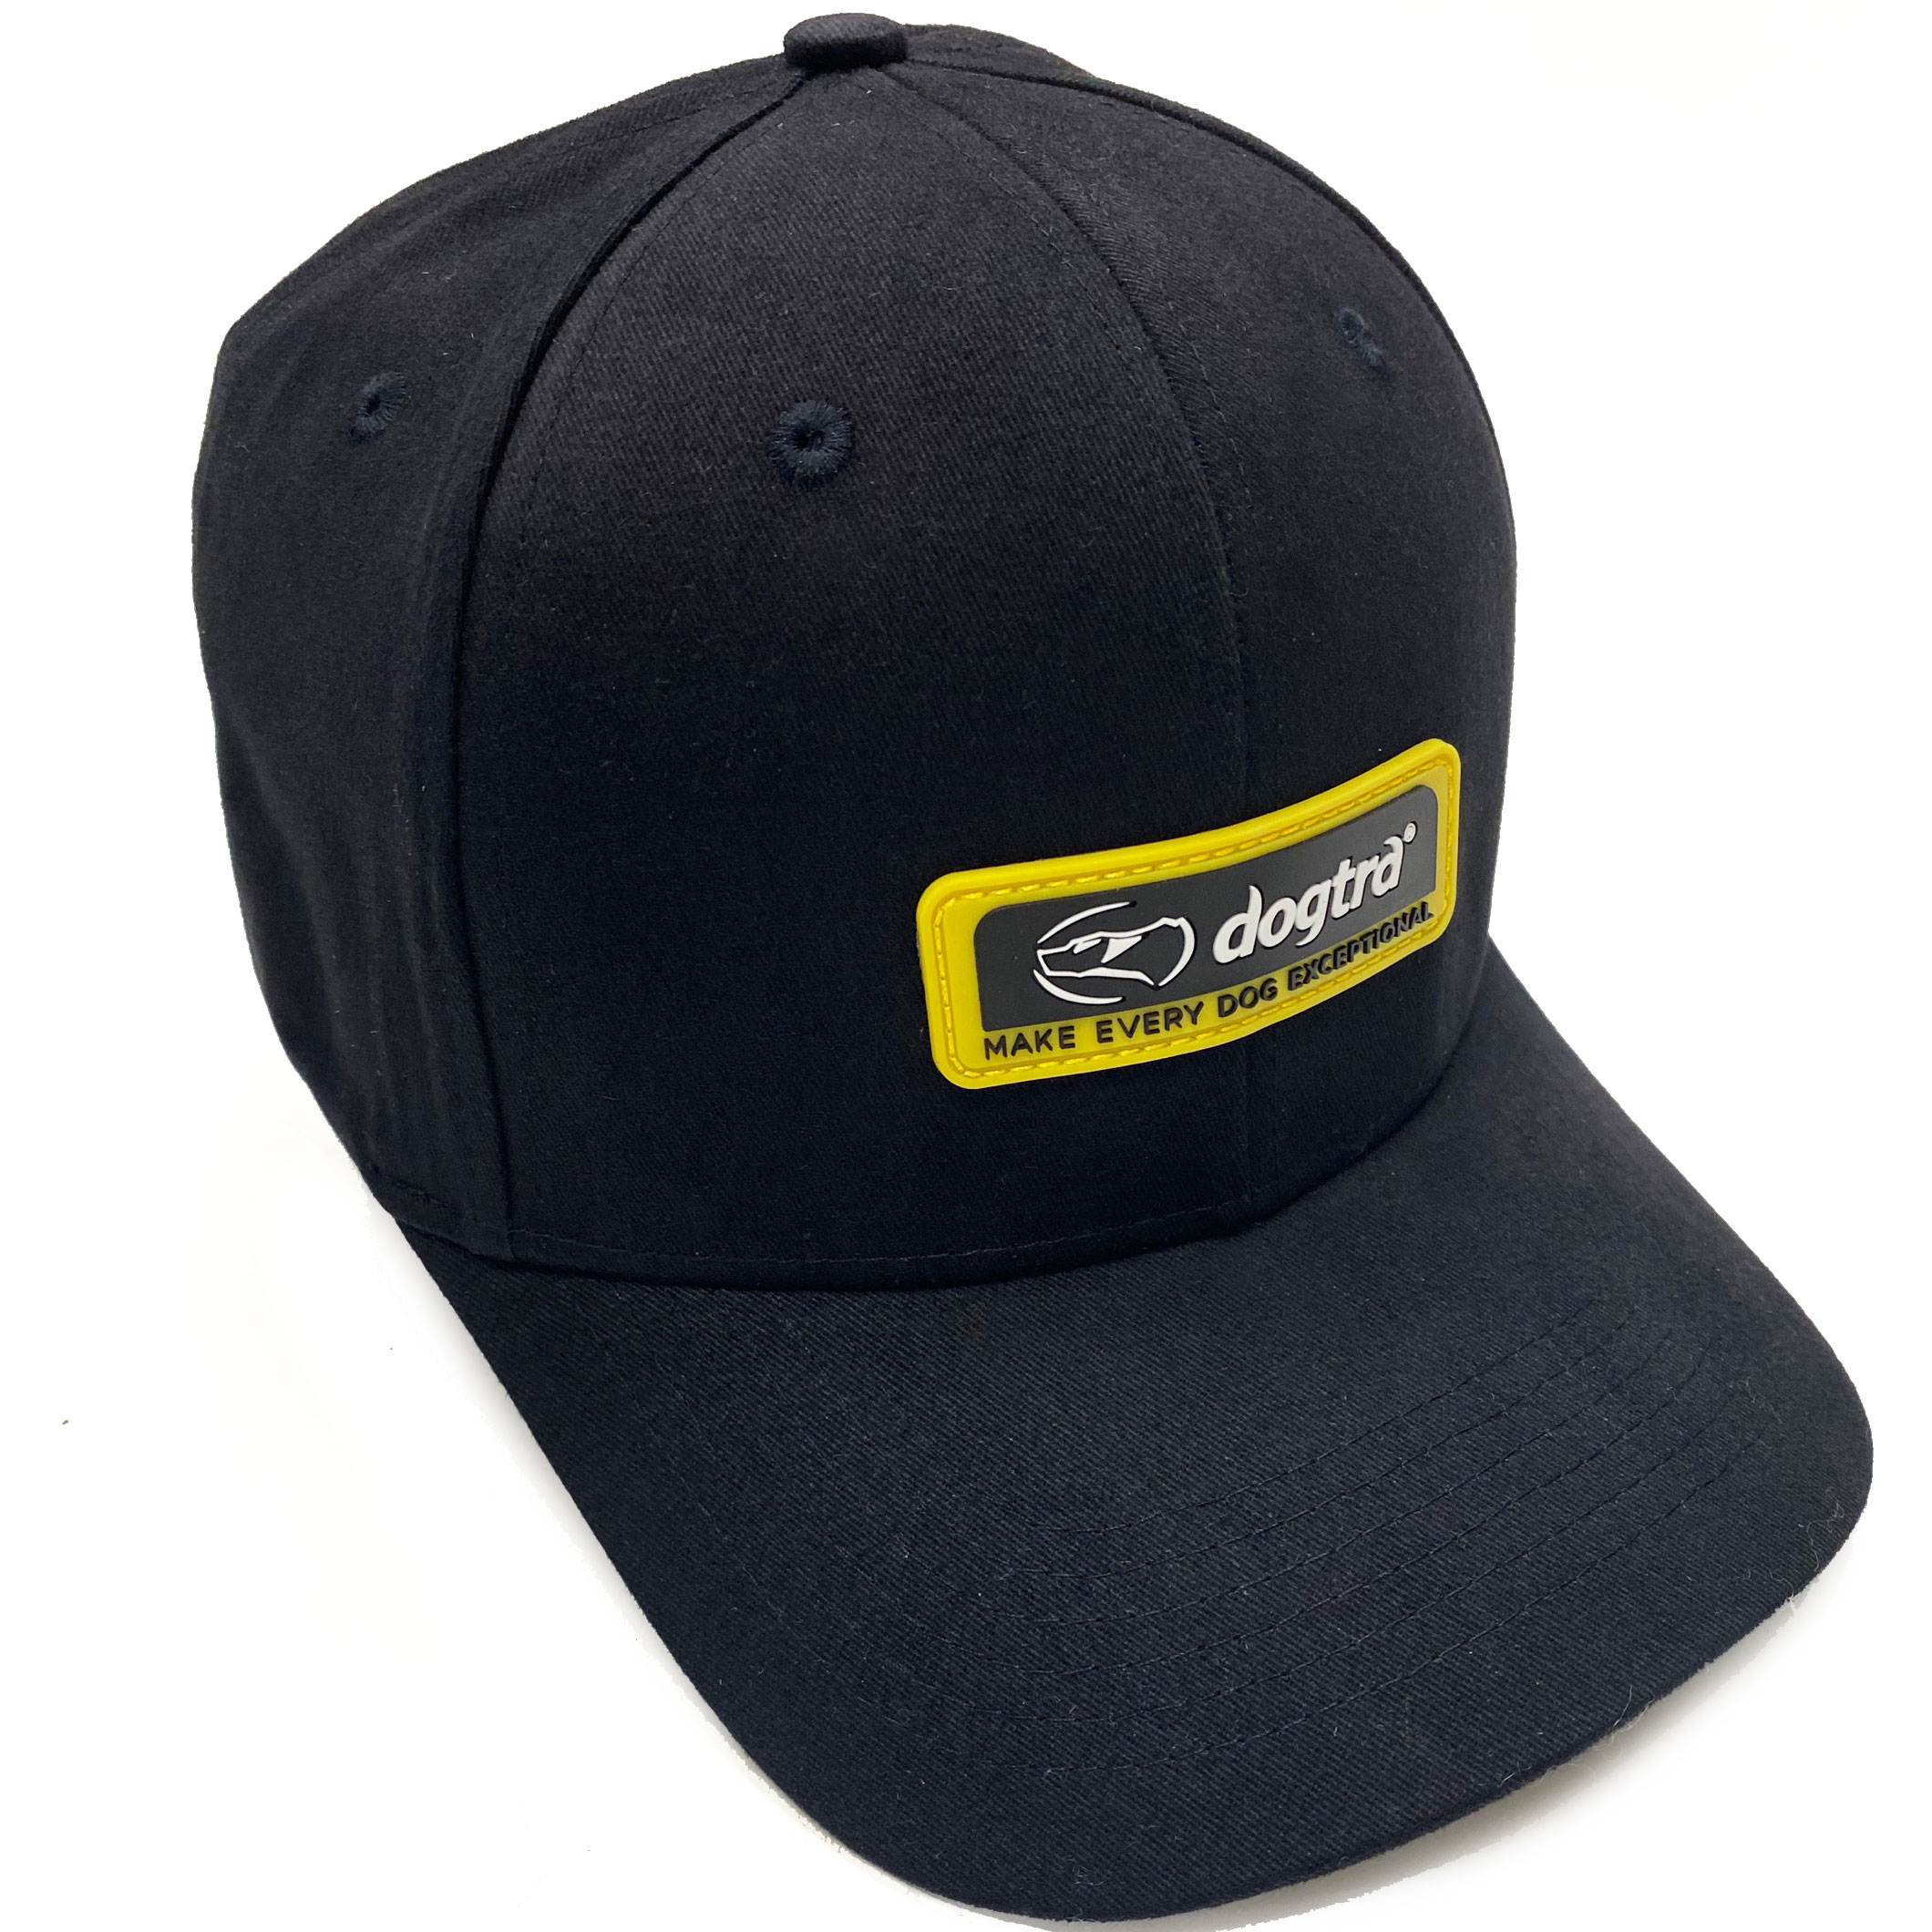 Dogtra hat - Black